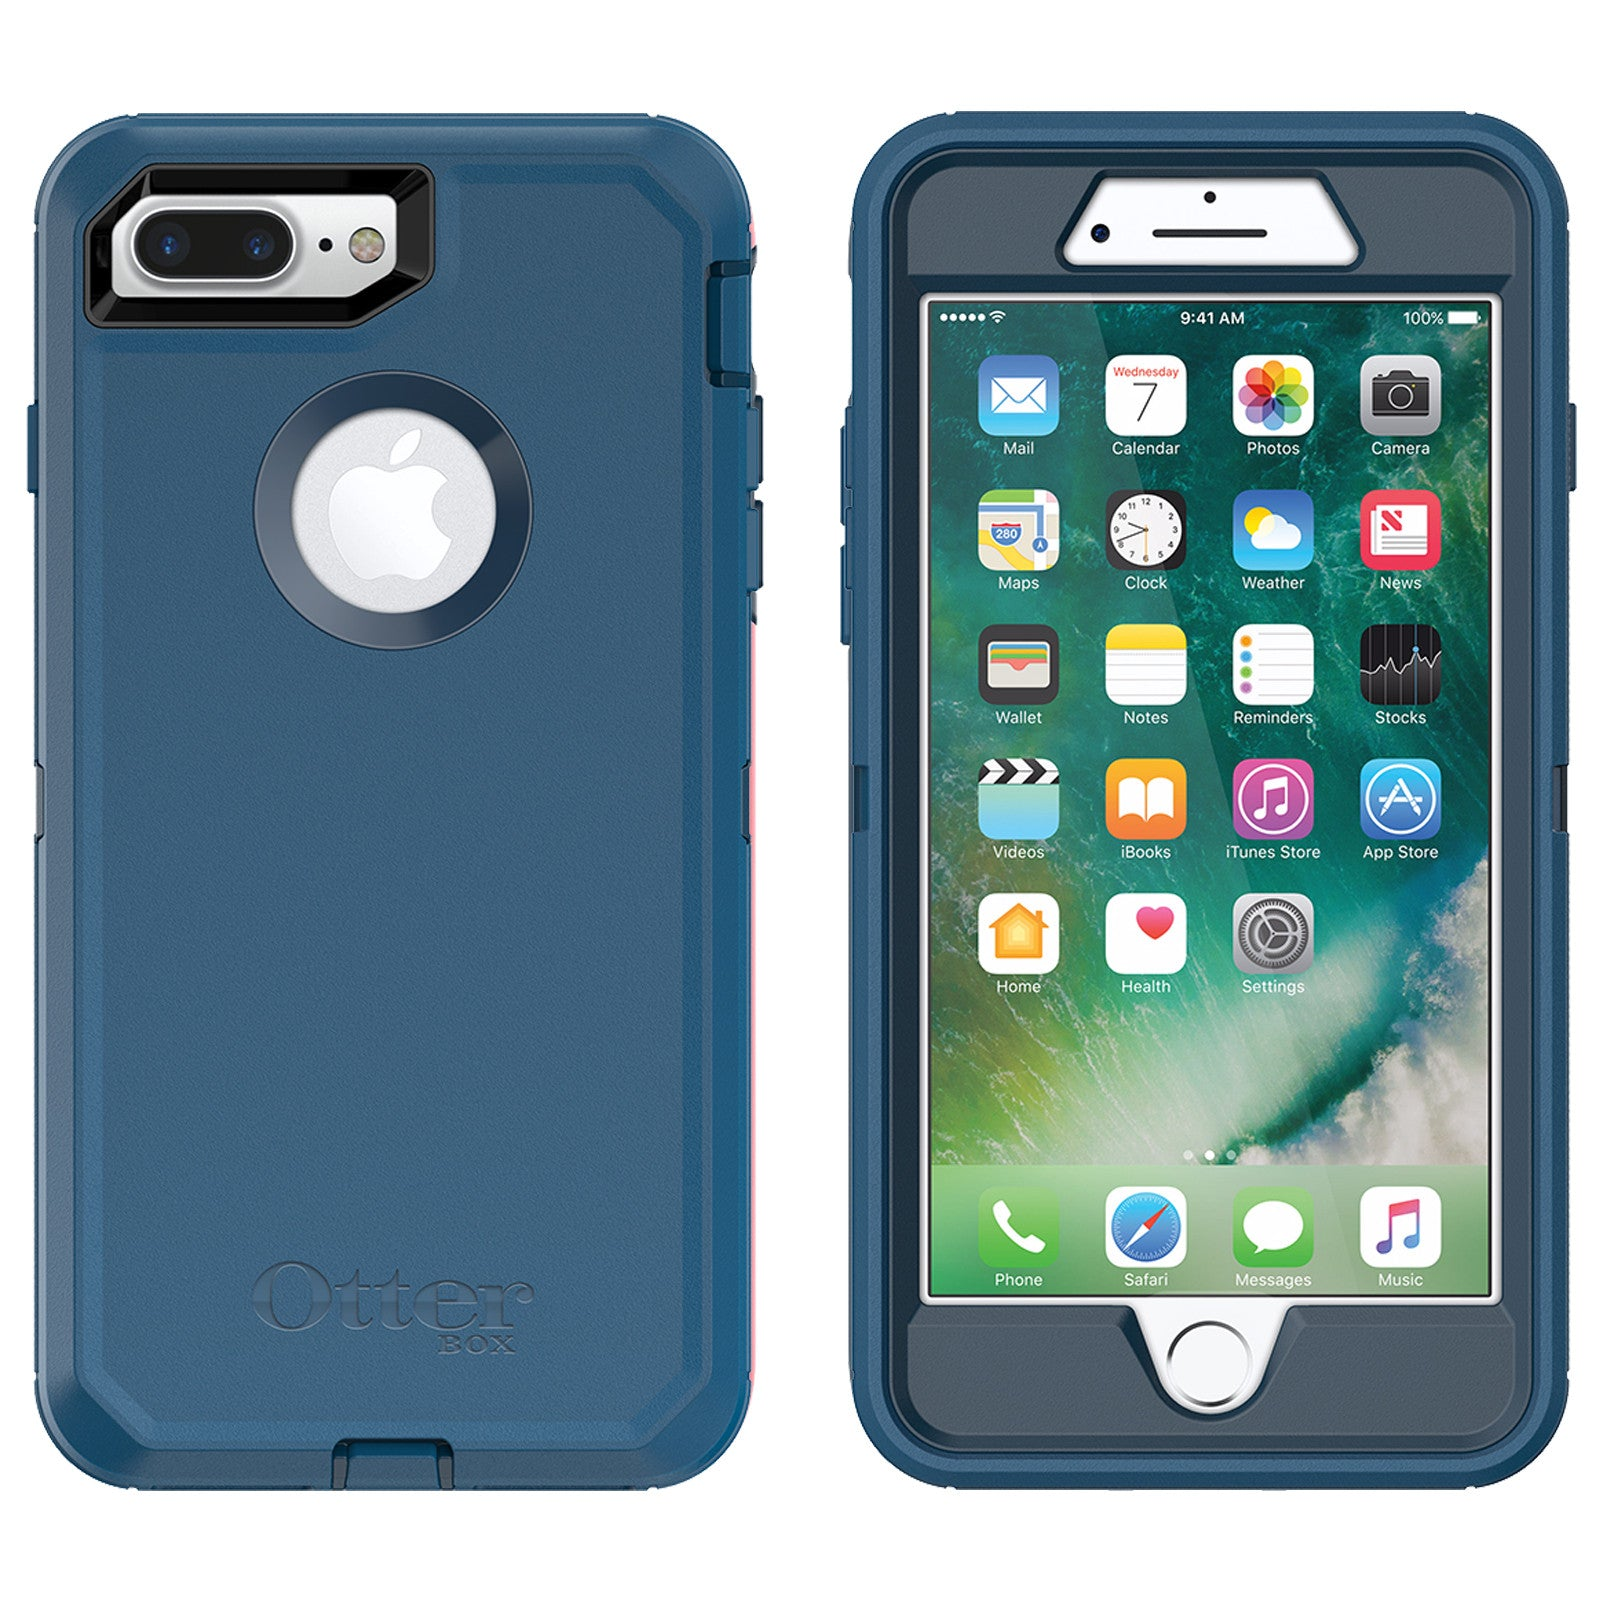 info for 9a98b a07f6 OtterBox Defender case for iPhone 7 Plus - Bespoke Way Blue